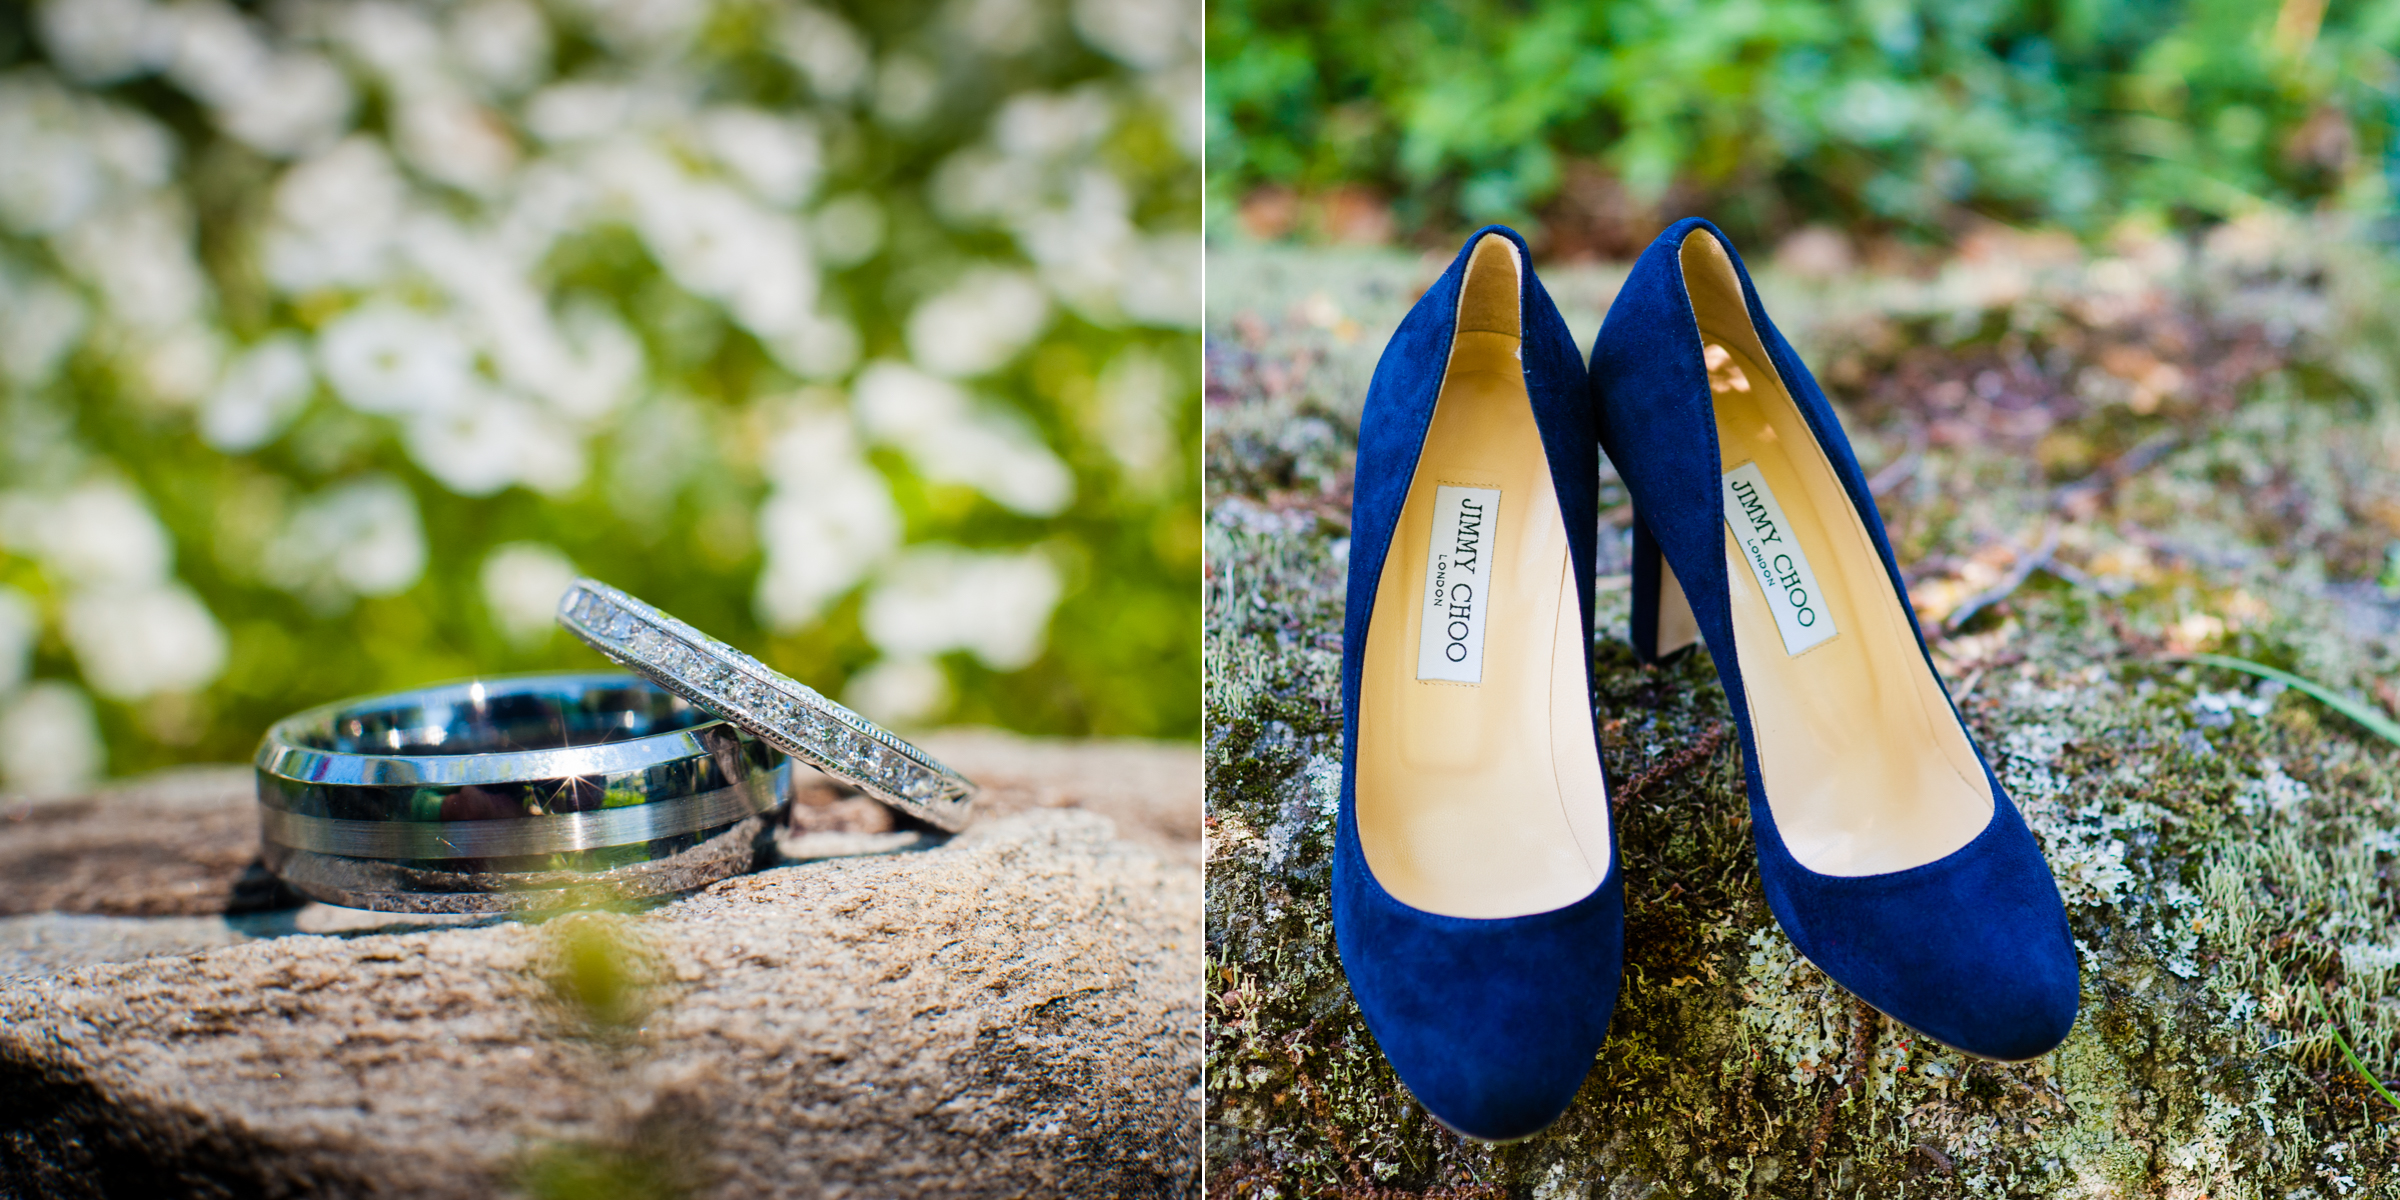 Jimmy Choo blue wedding shoes and beautiful wedding bands posed on a rock